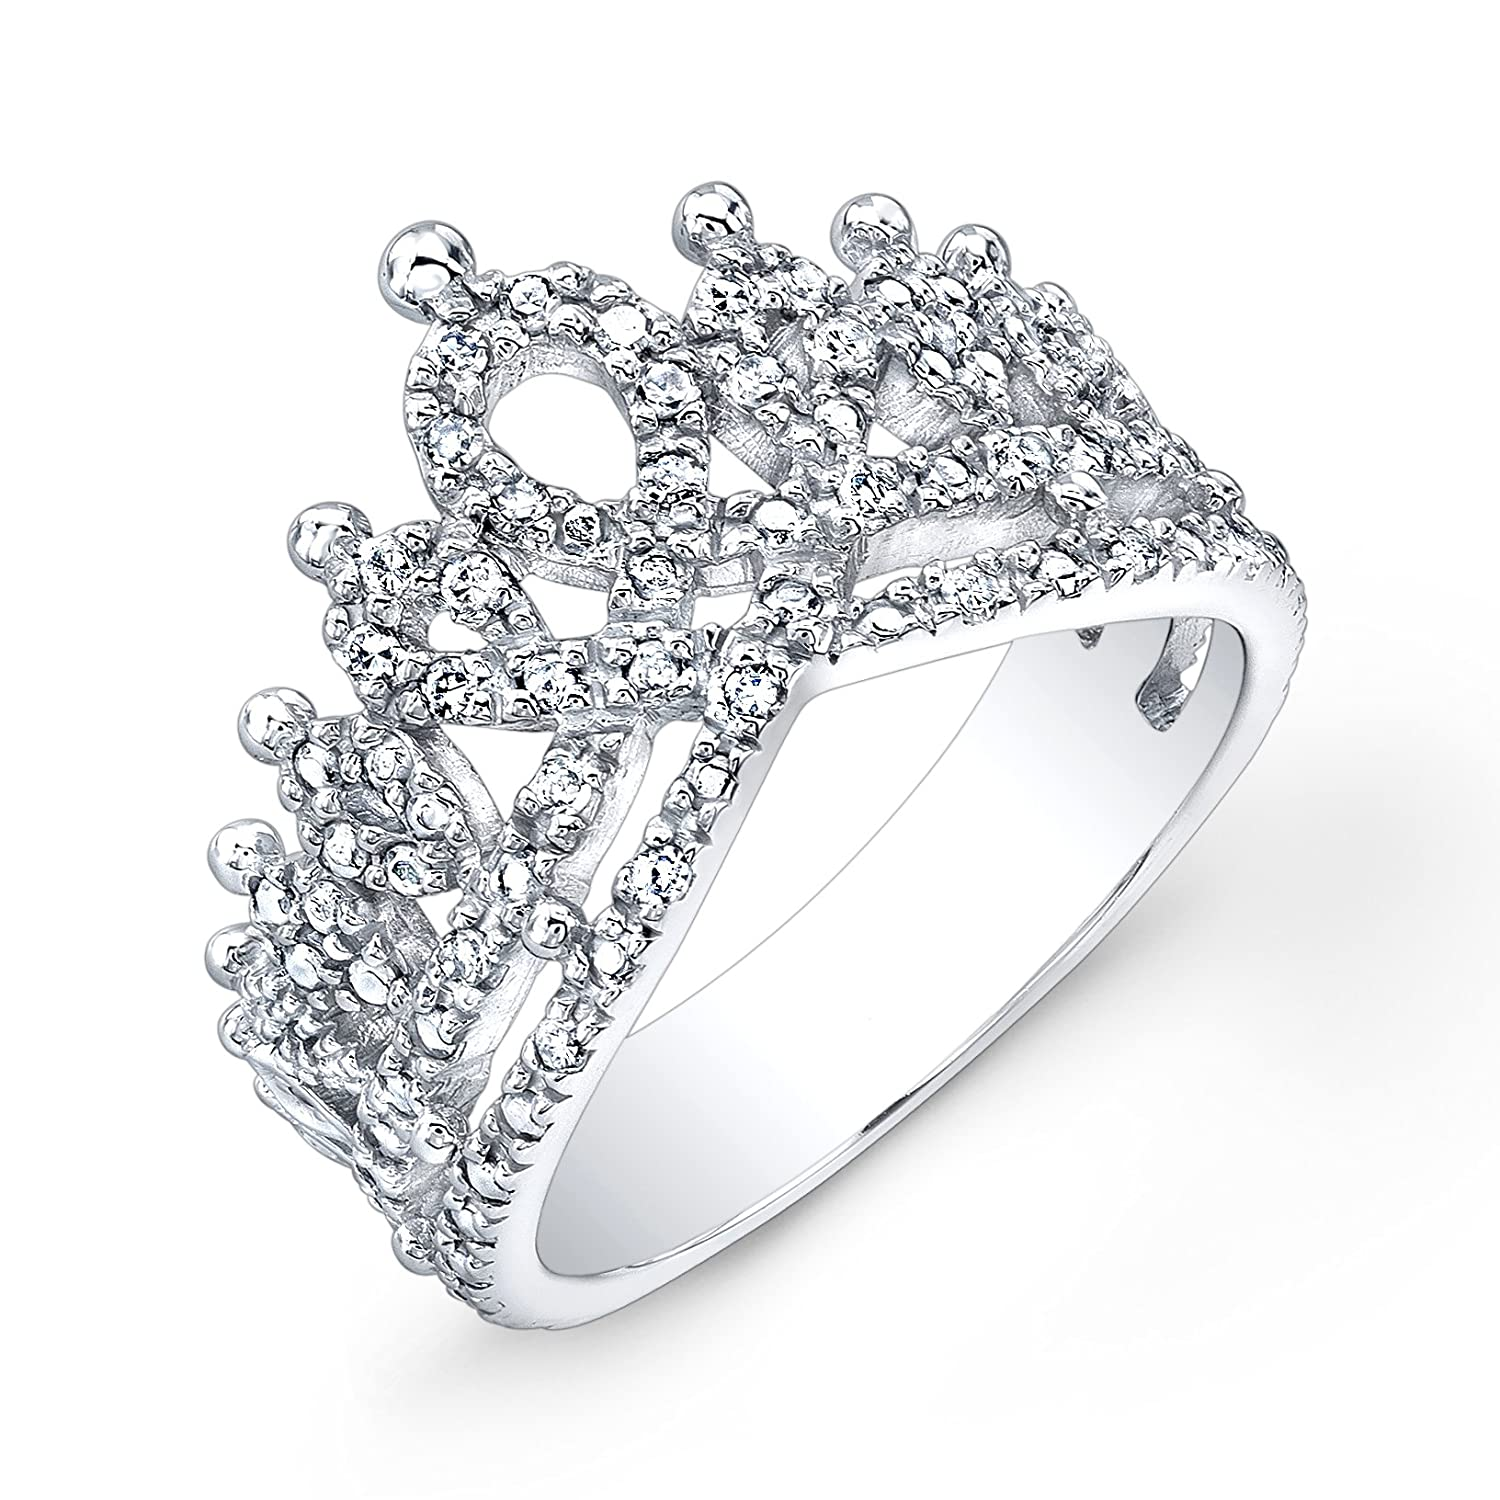 online watches diamond and storemeister fine jewelry rings ring kay products silver find at brand jewelers sterling size